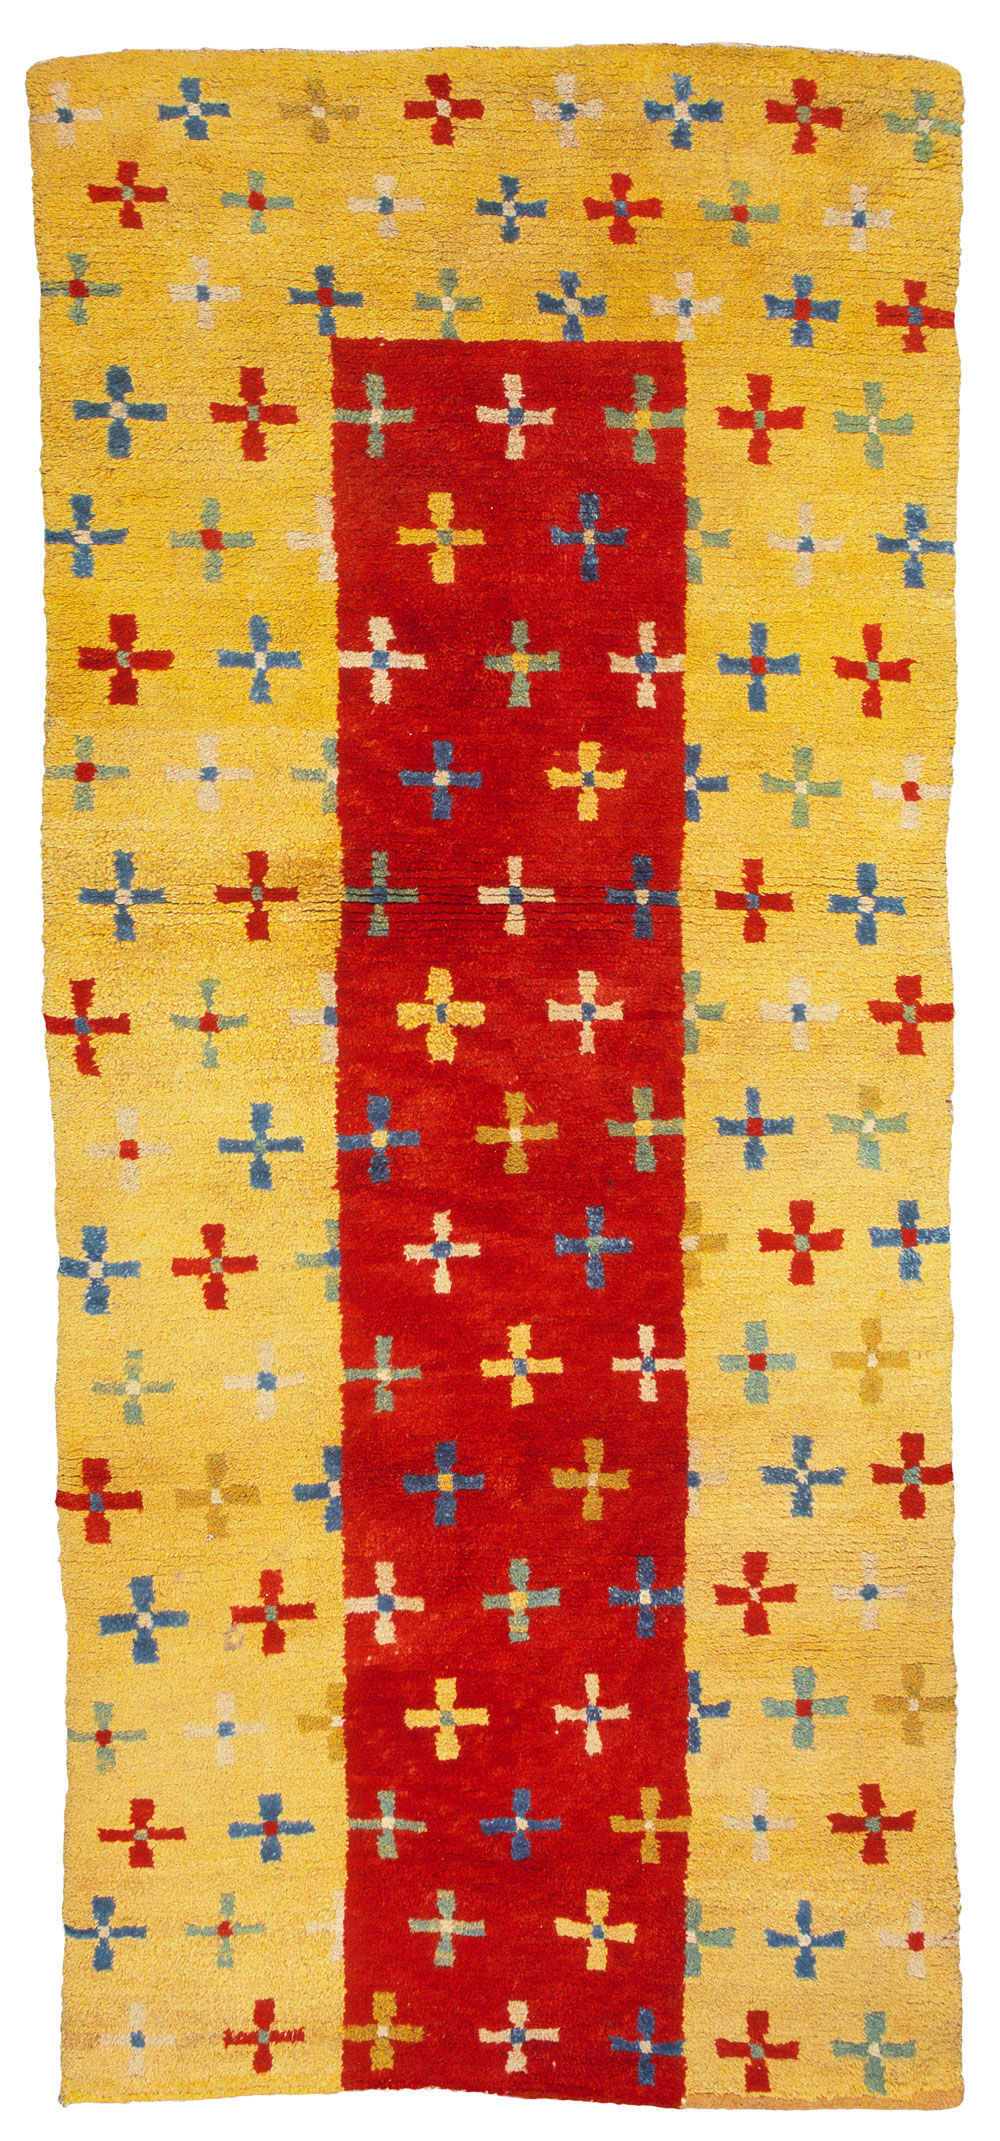 Tibetan rugs at Cologne Fine Art 2014, 'Tie-dye-Crosses' Rug, circa 1900, 180 x 80 cm